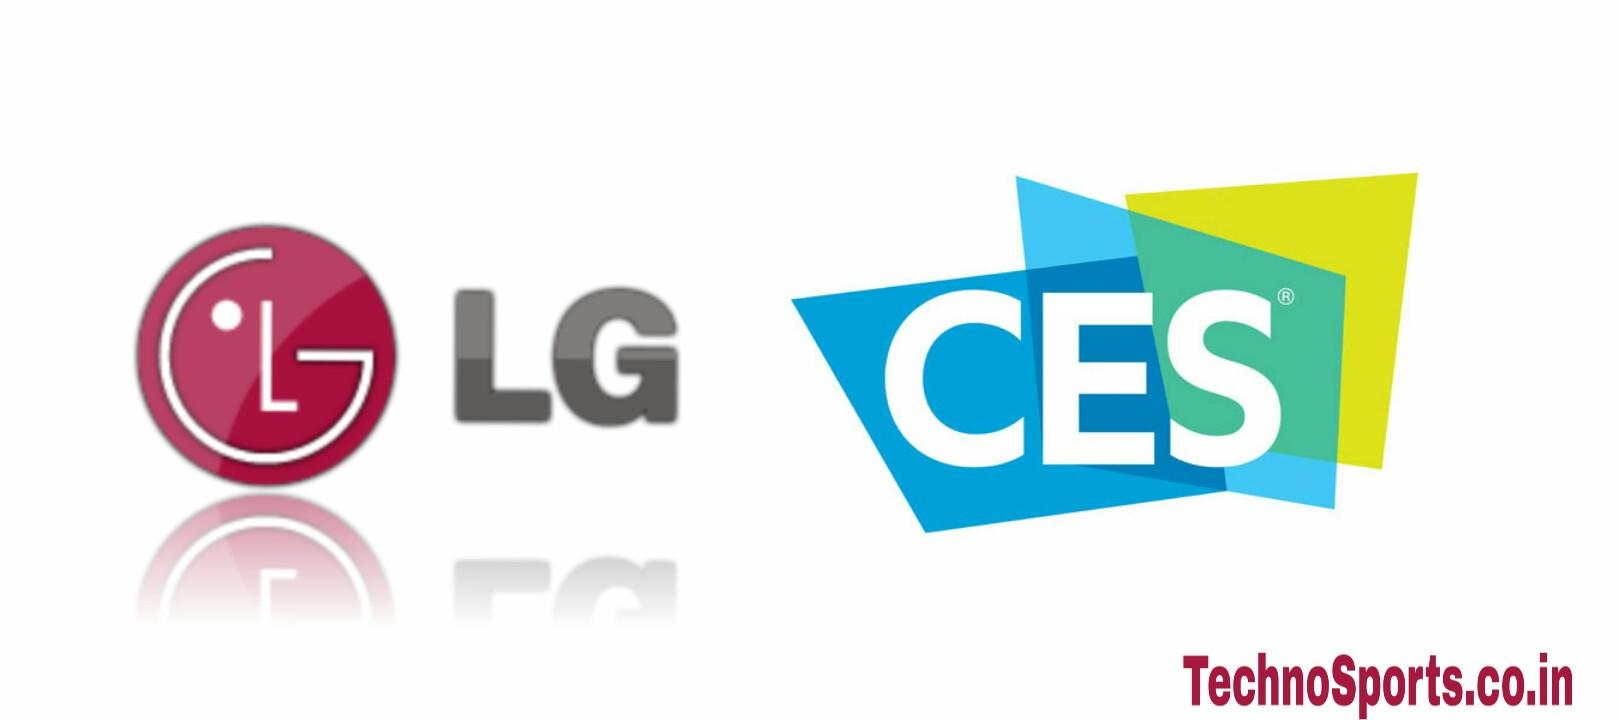 LG_CES2019_technosports.co.in